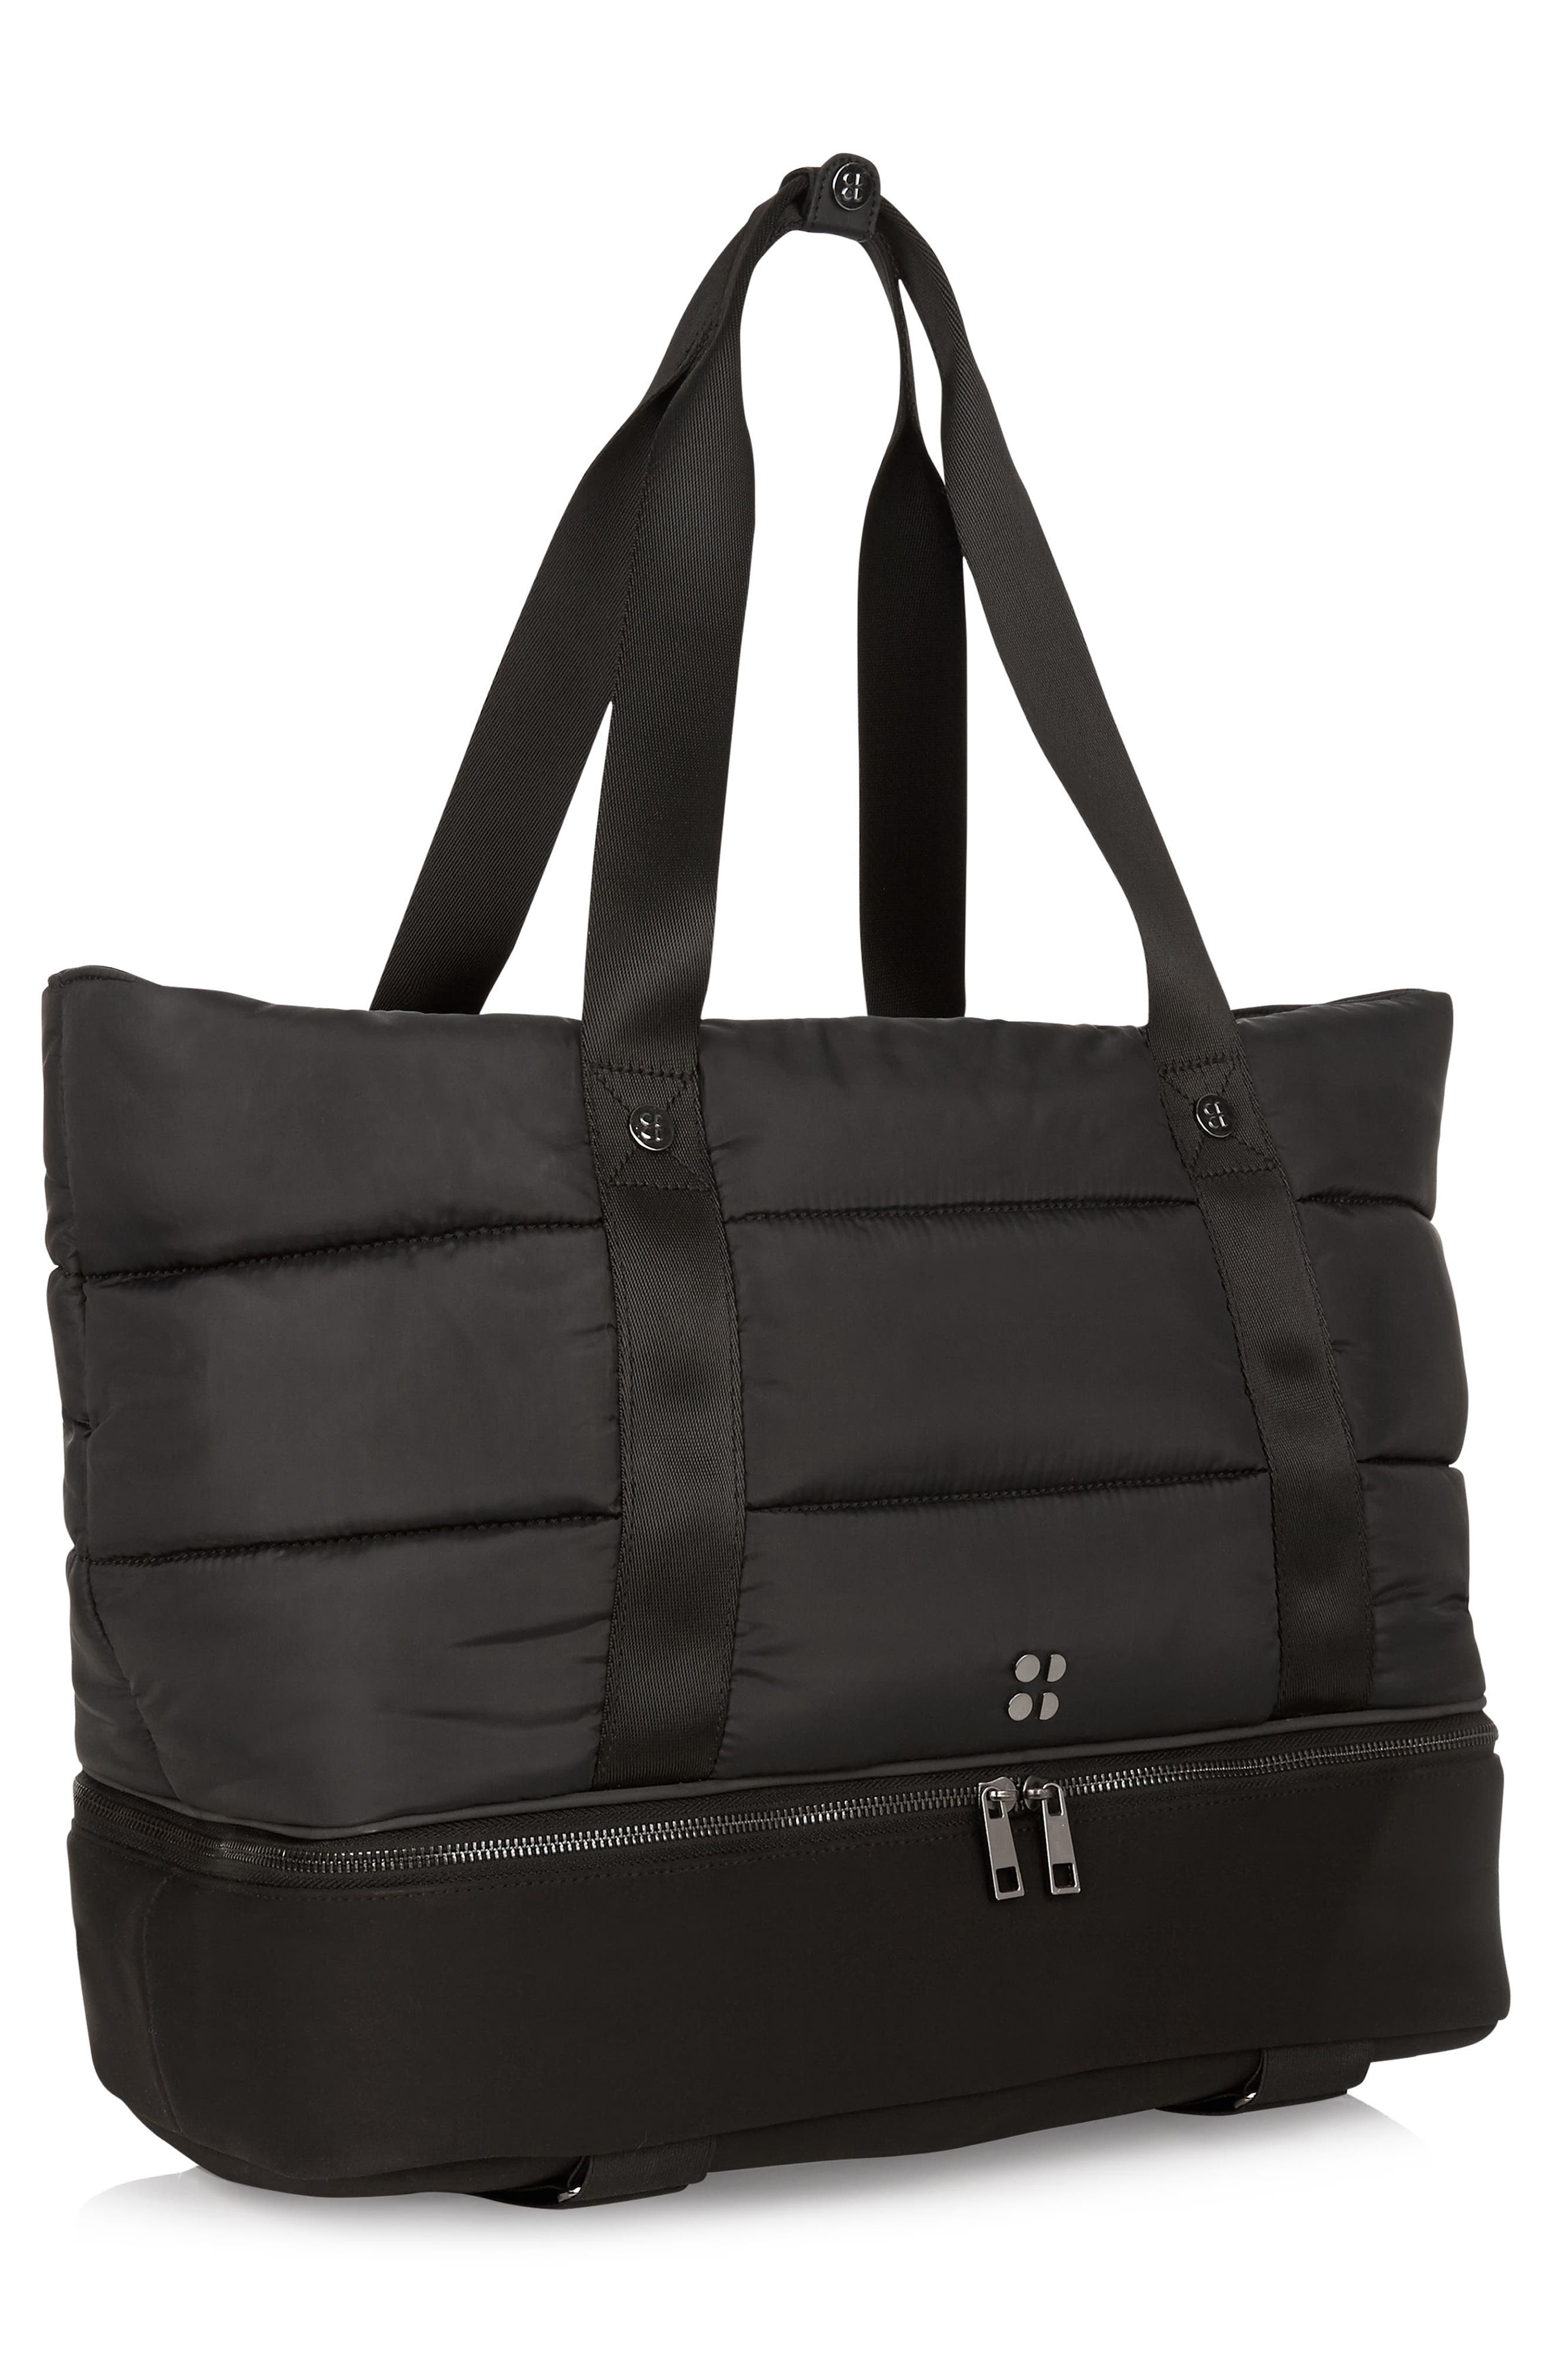 SWEATY BETTY,                             Sweat Betty Luxe Gym Bag,                             Alternate thumbnail 4, color,                             001